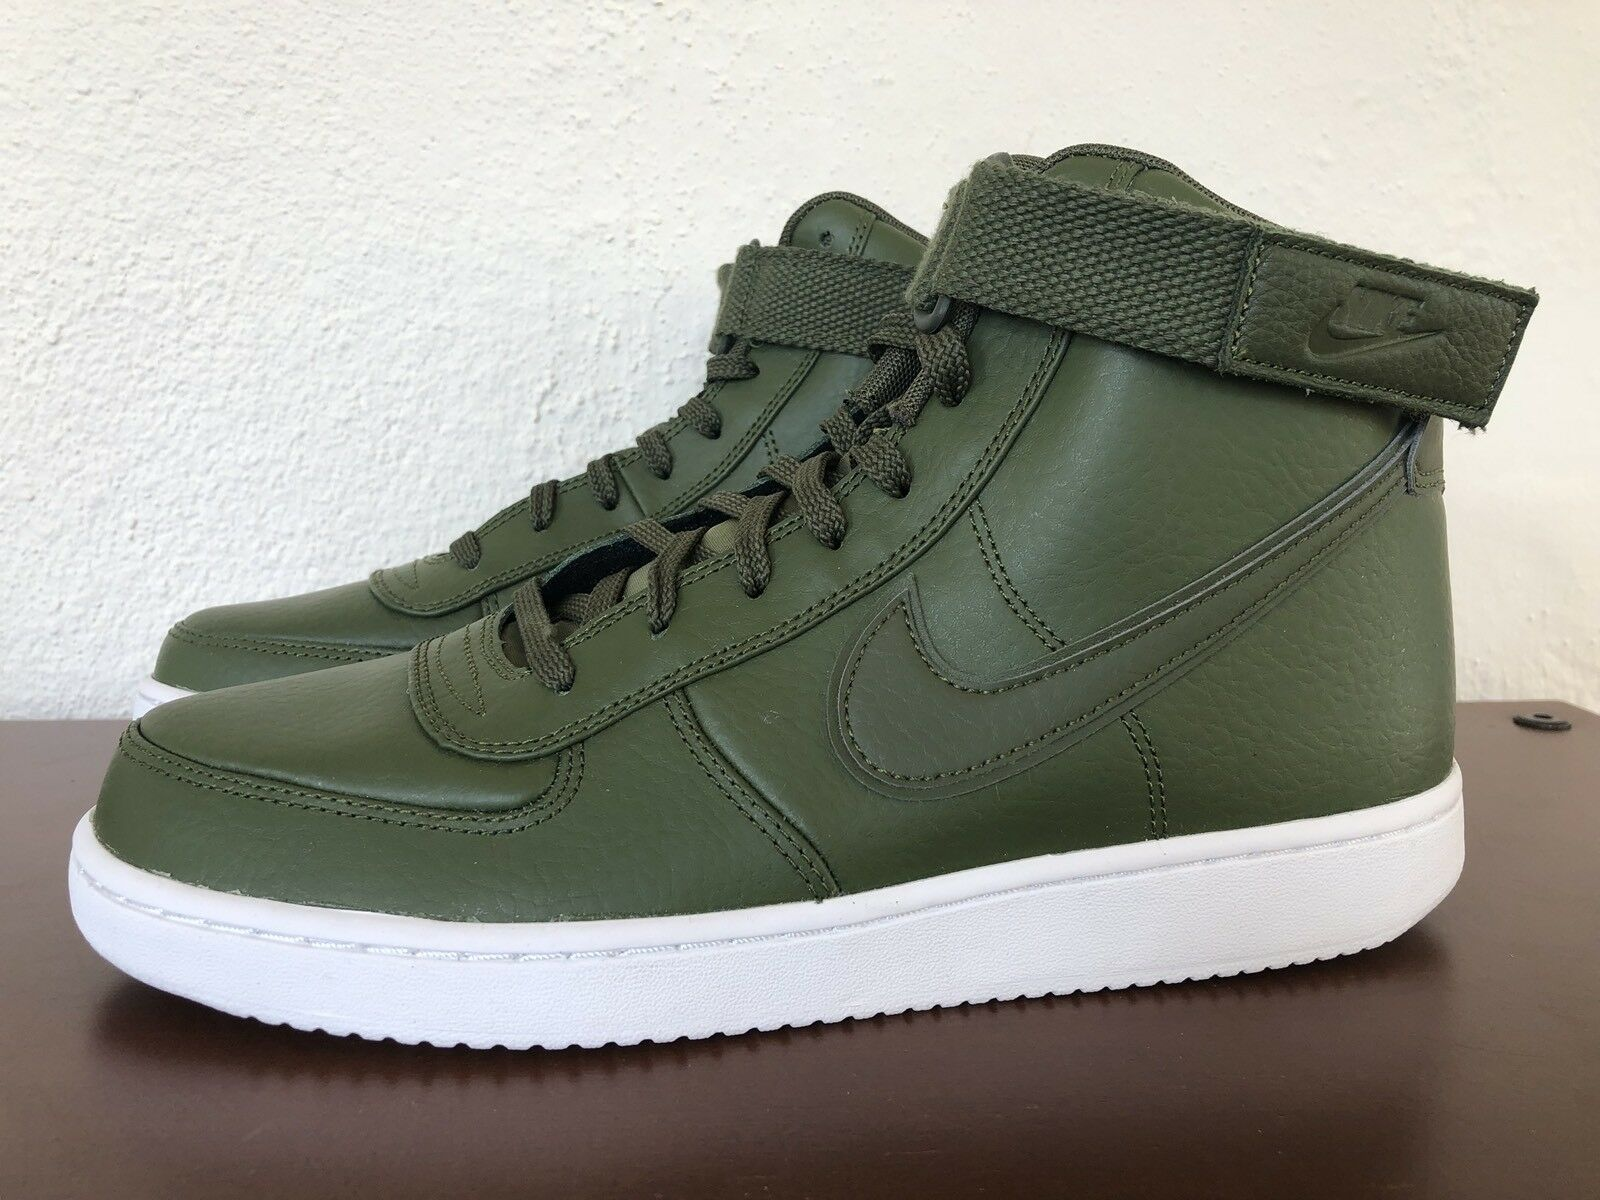 Nike Vandal High Green Supreme LTR Leather Legion Green High Olive Army AH8518 300 size 9 829994